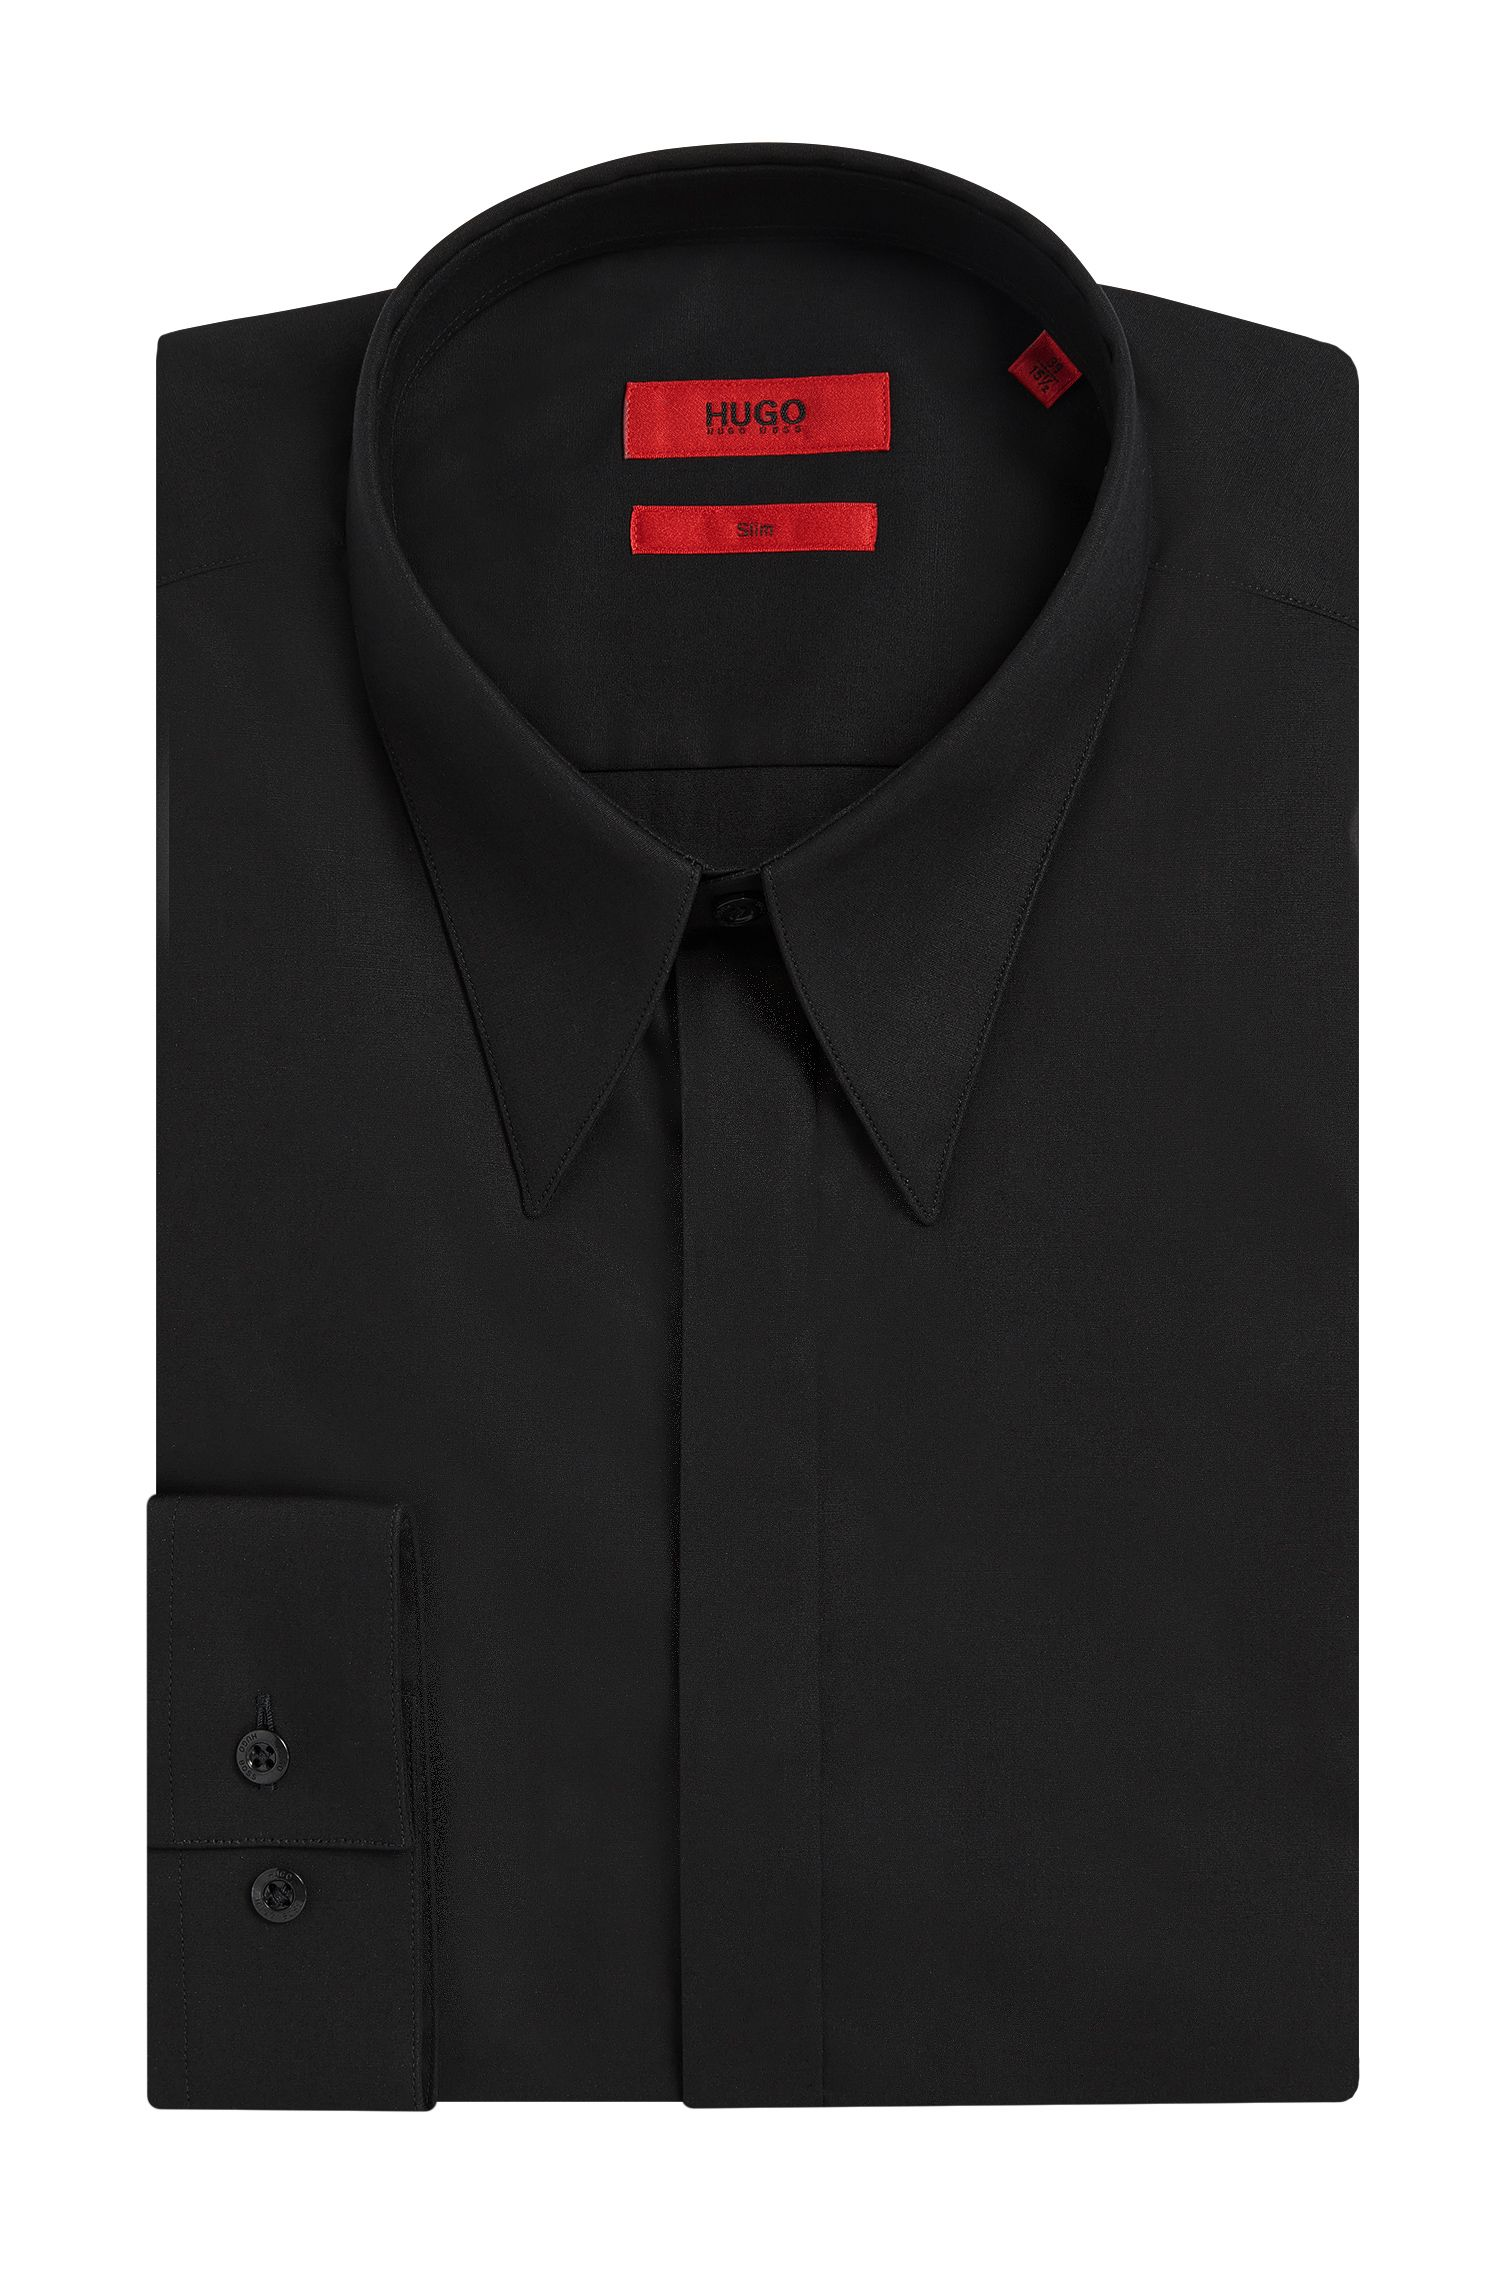 'Enek' | Slim Fit, Stretch Cotton Dress Shirt